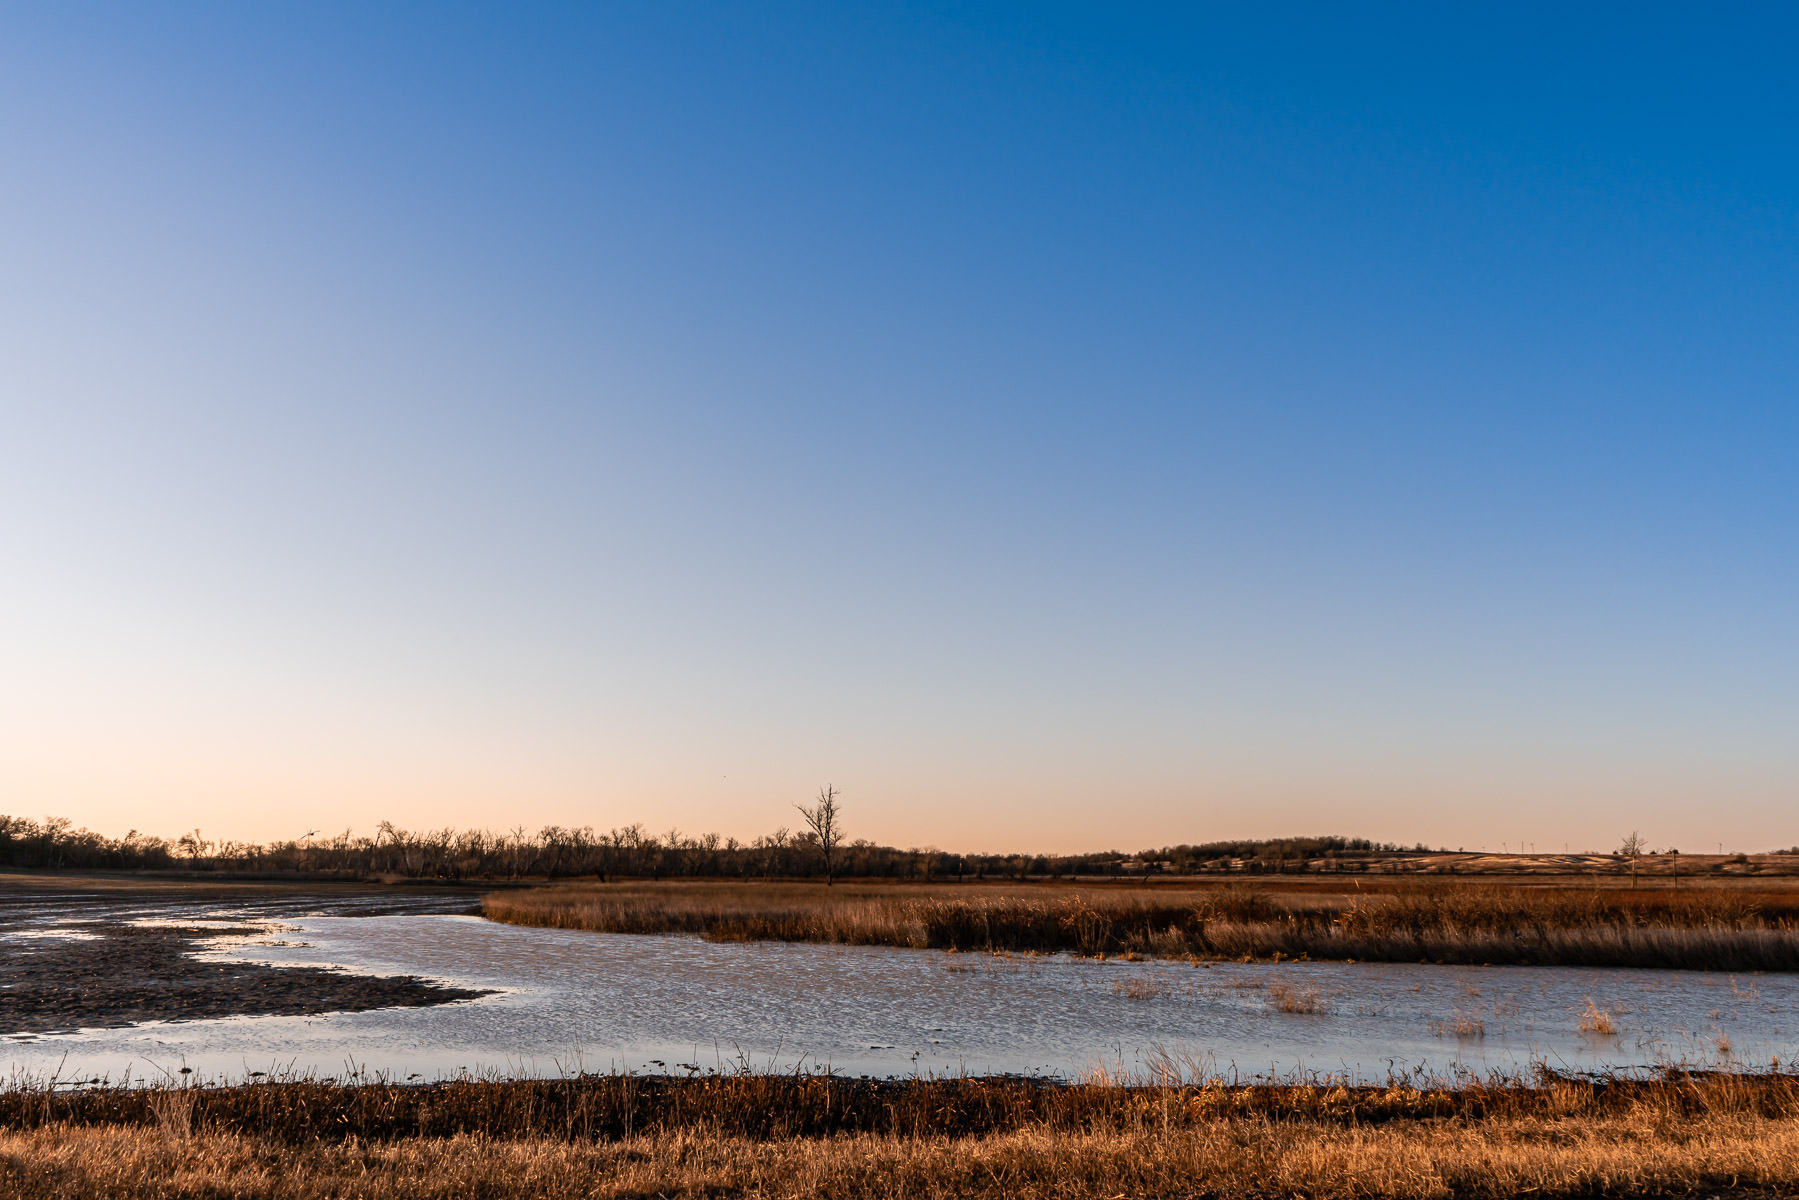 The sun rises on North Texas' Hagerman National Wildlife Refuge.